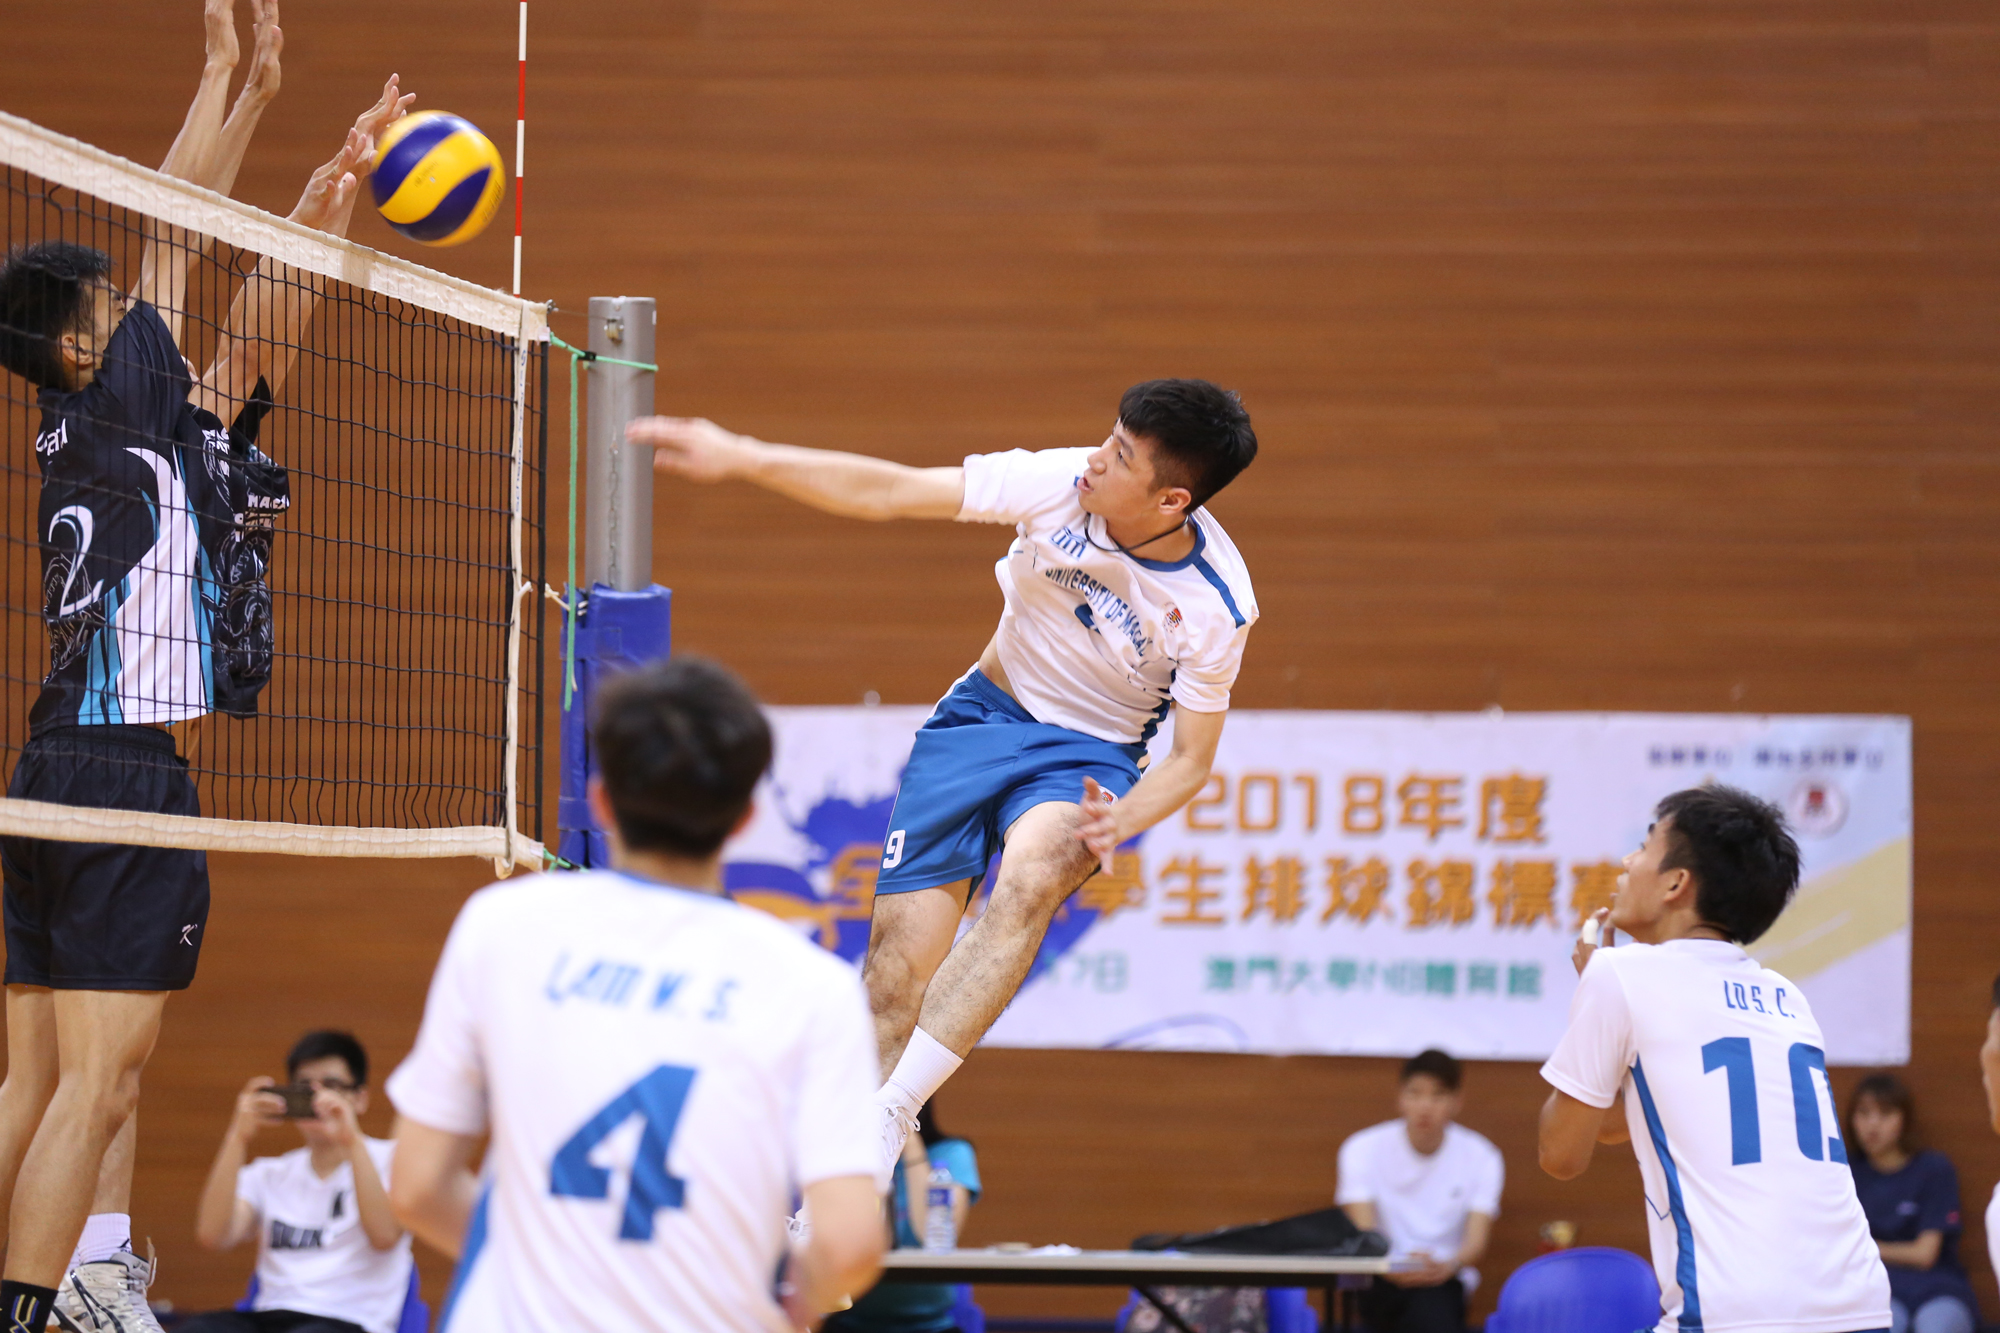 UM Men's Volleyball Team in the competition